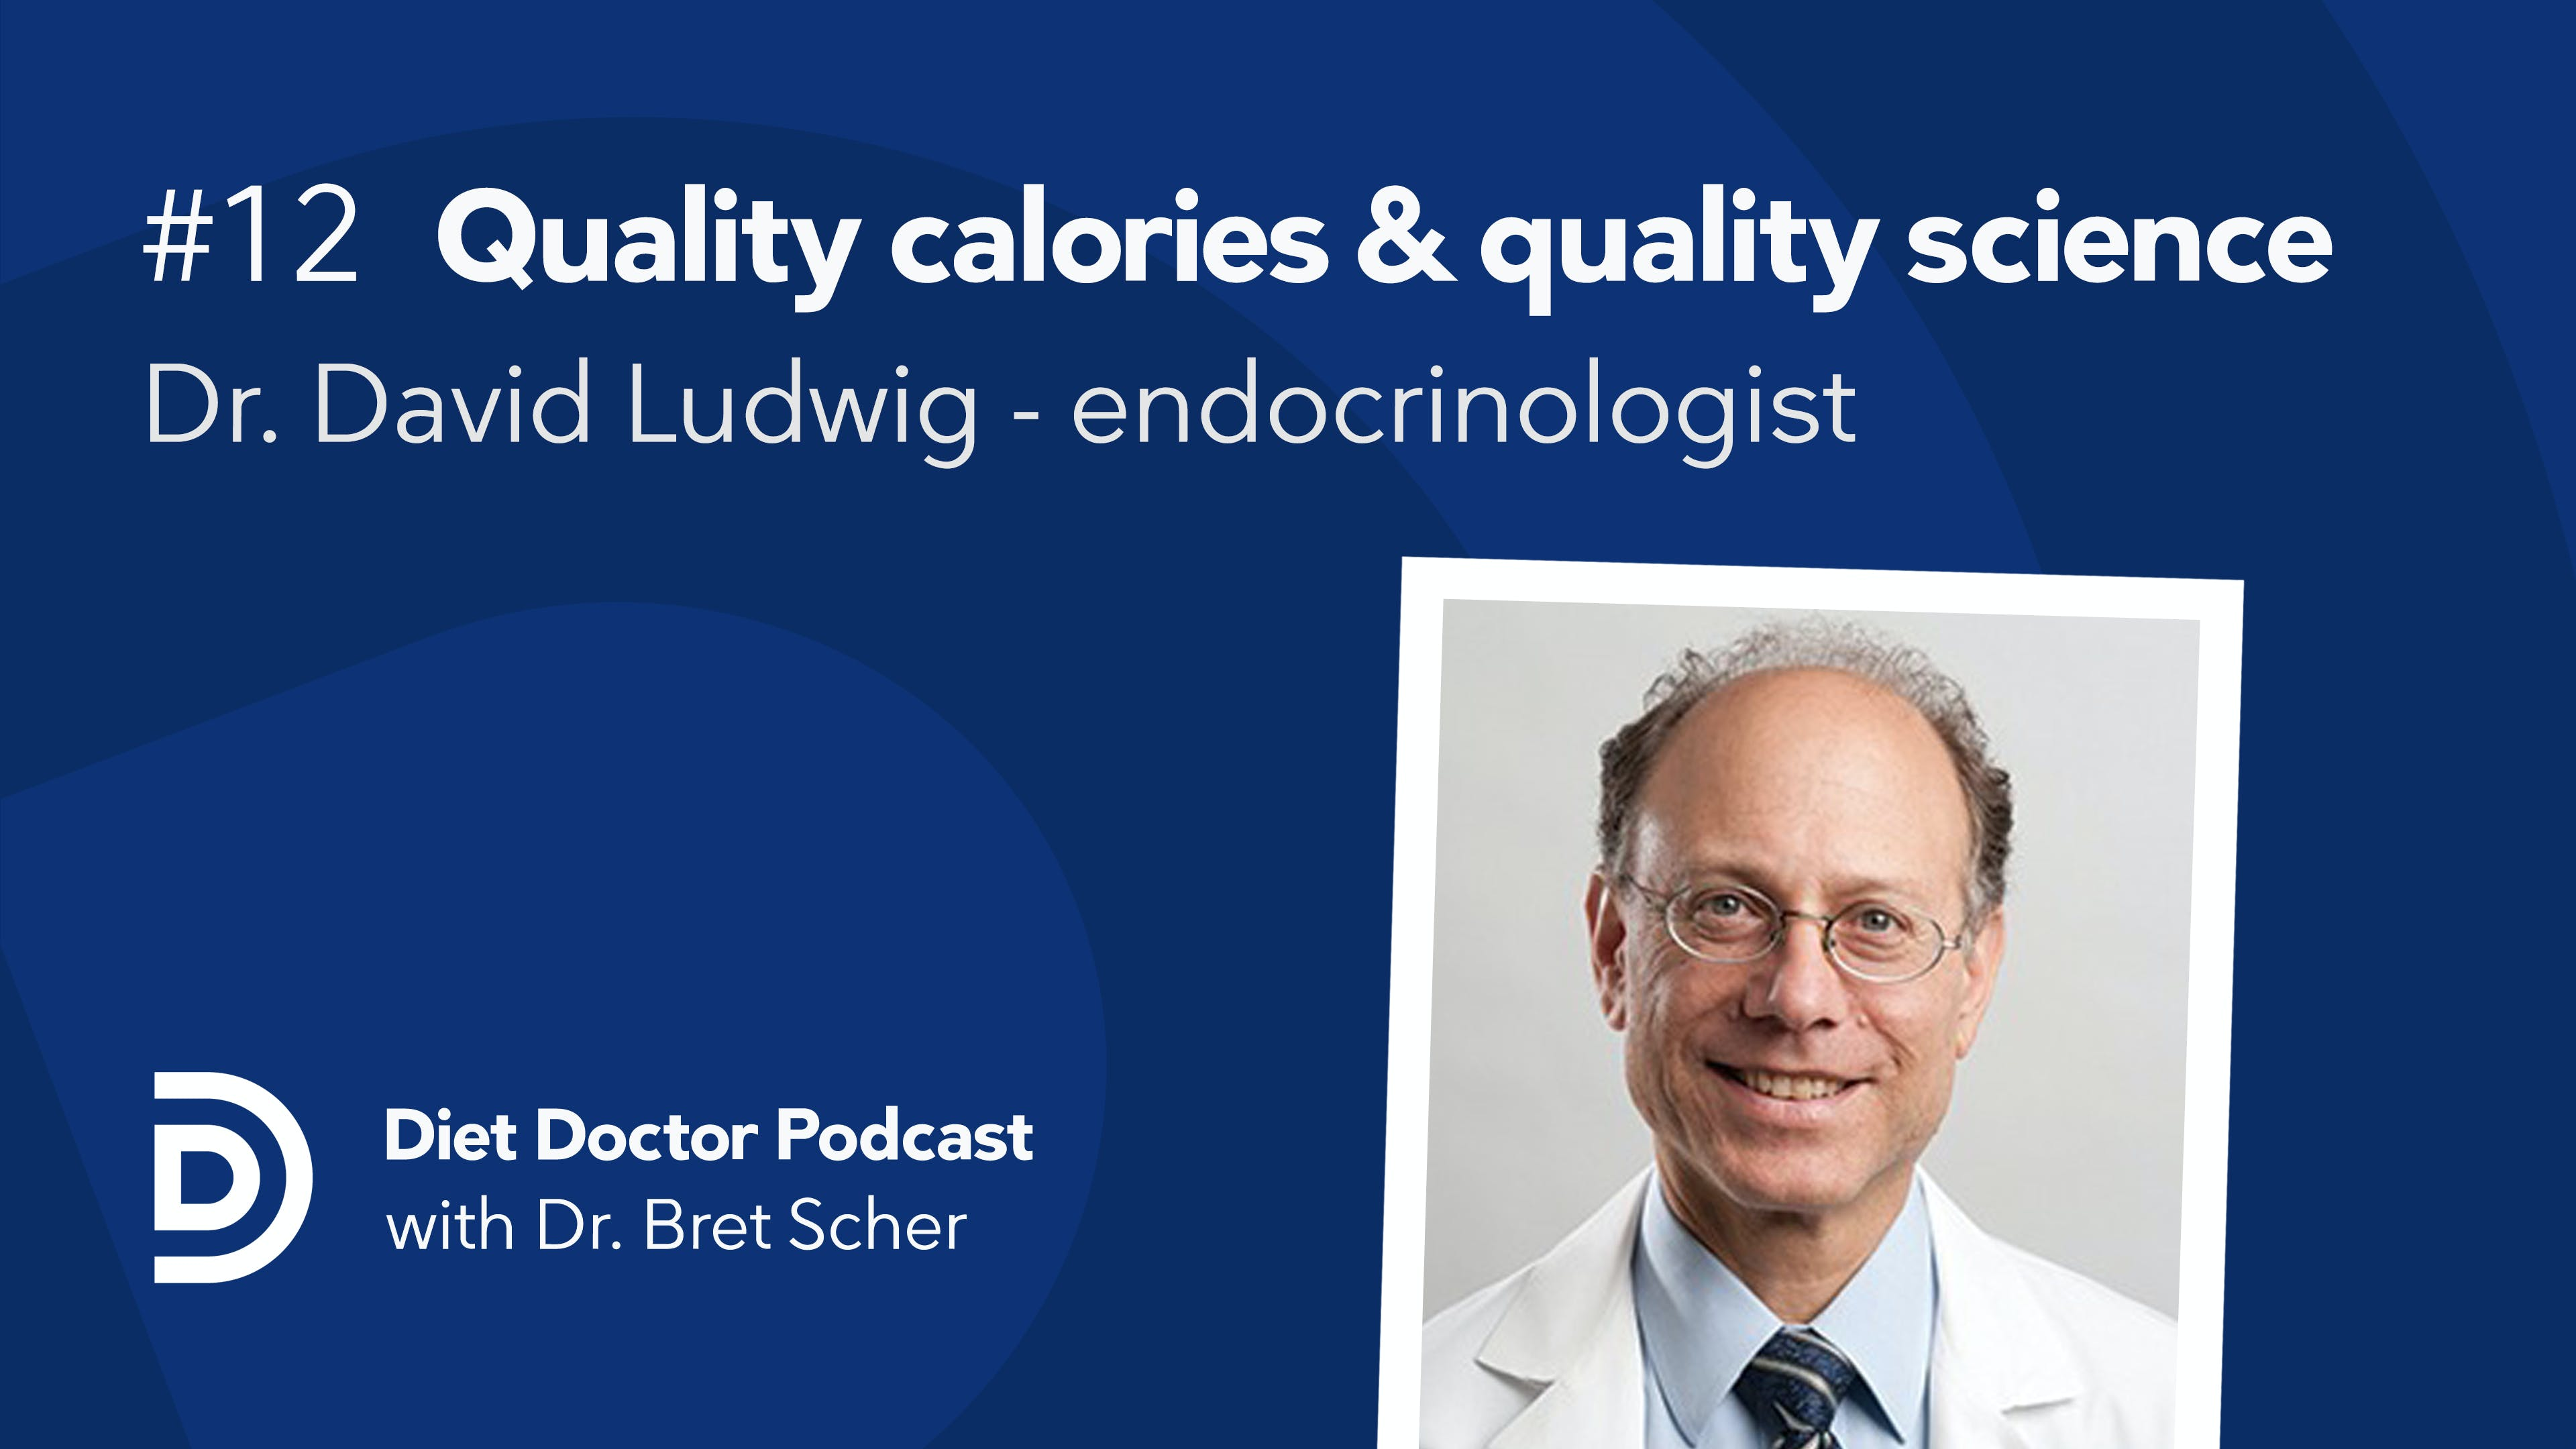 Diet Doctor podcast #12 with David Ludwig